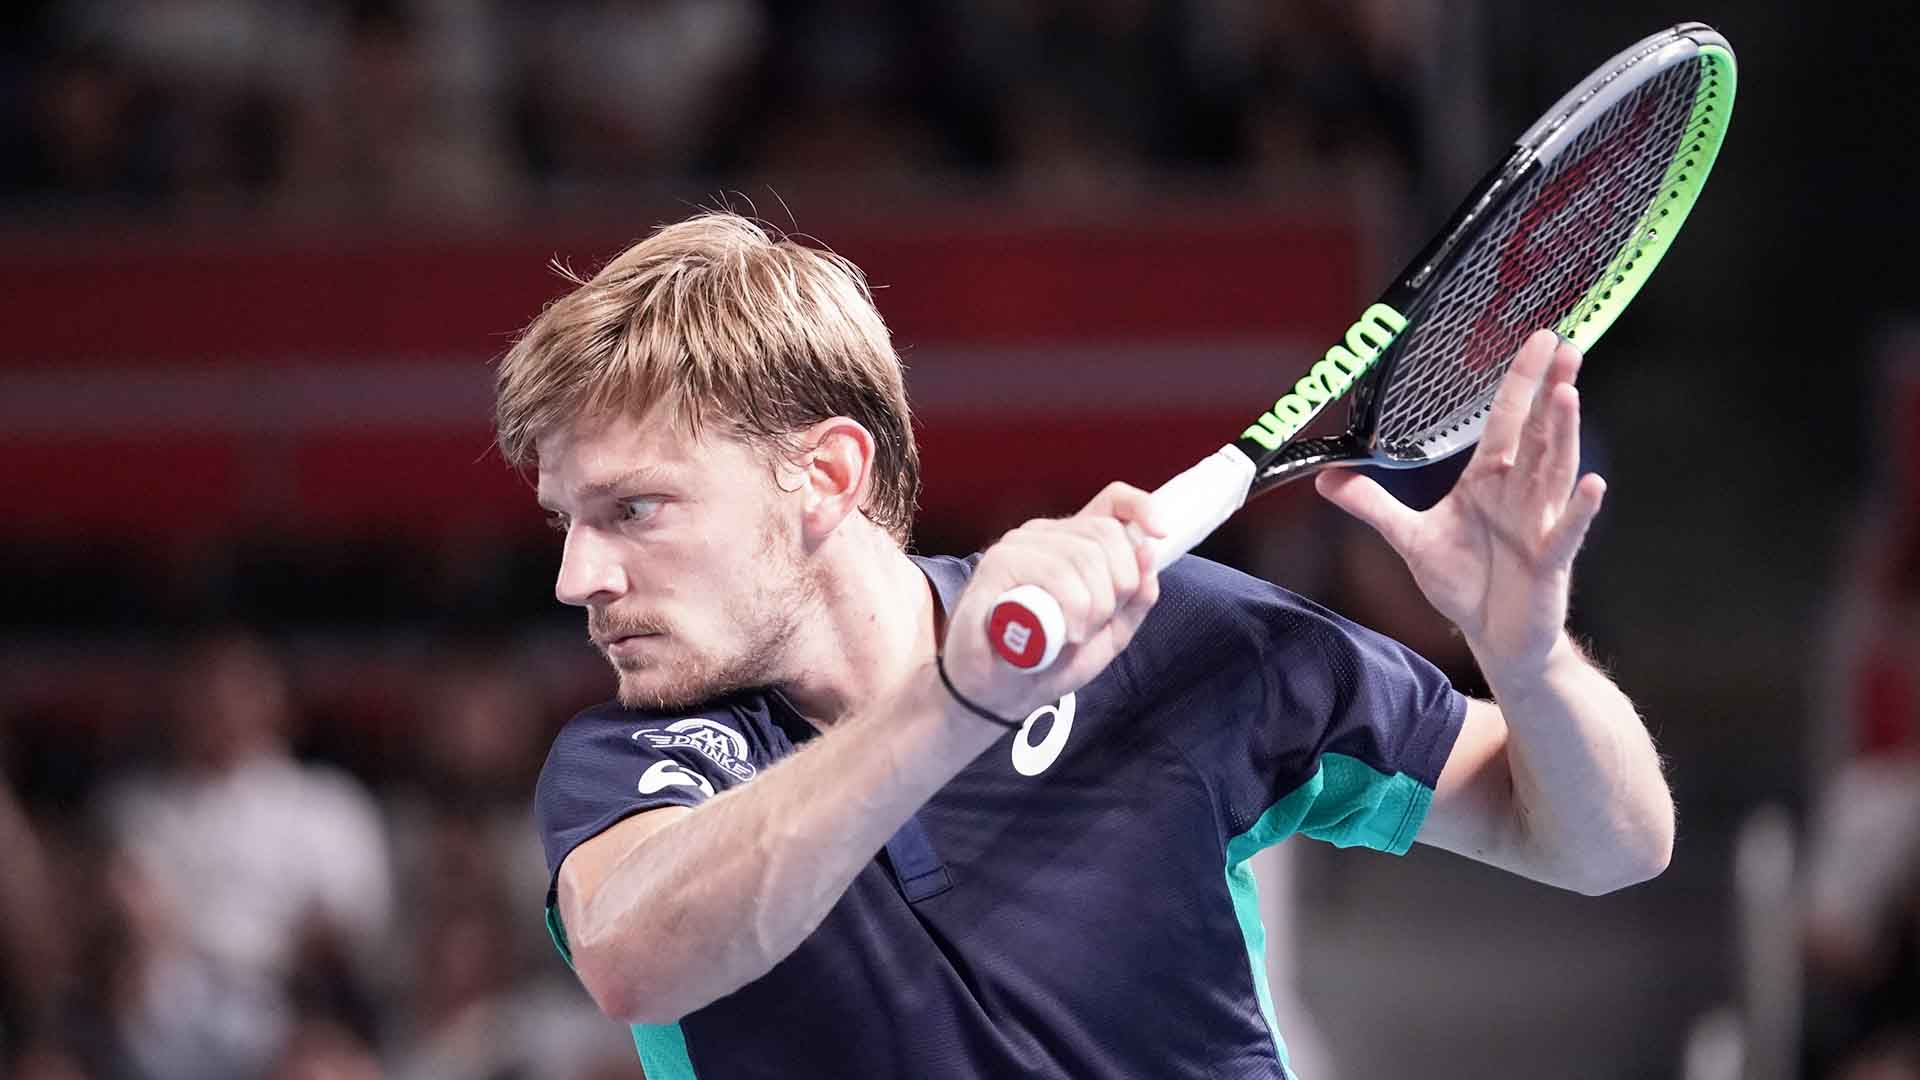 David Goffin is bidding to reach his third final in as many appearances at the Rakuten Japan Open Tennis Championships.